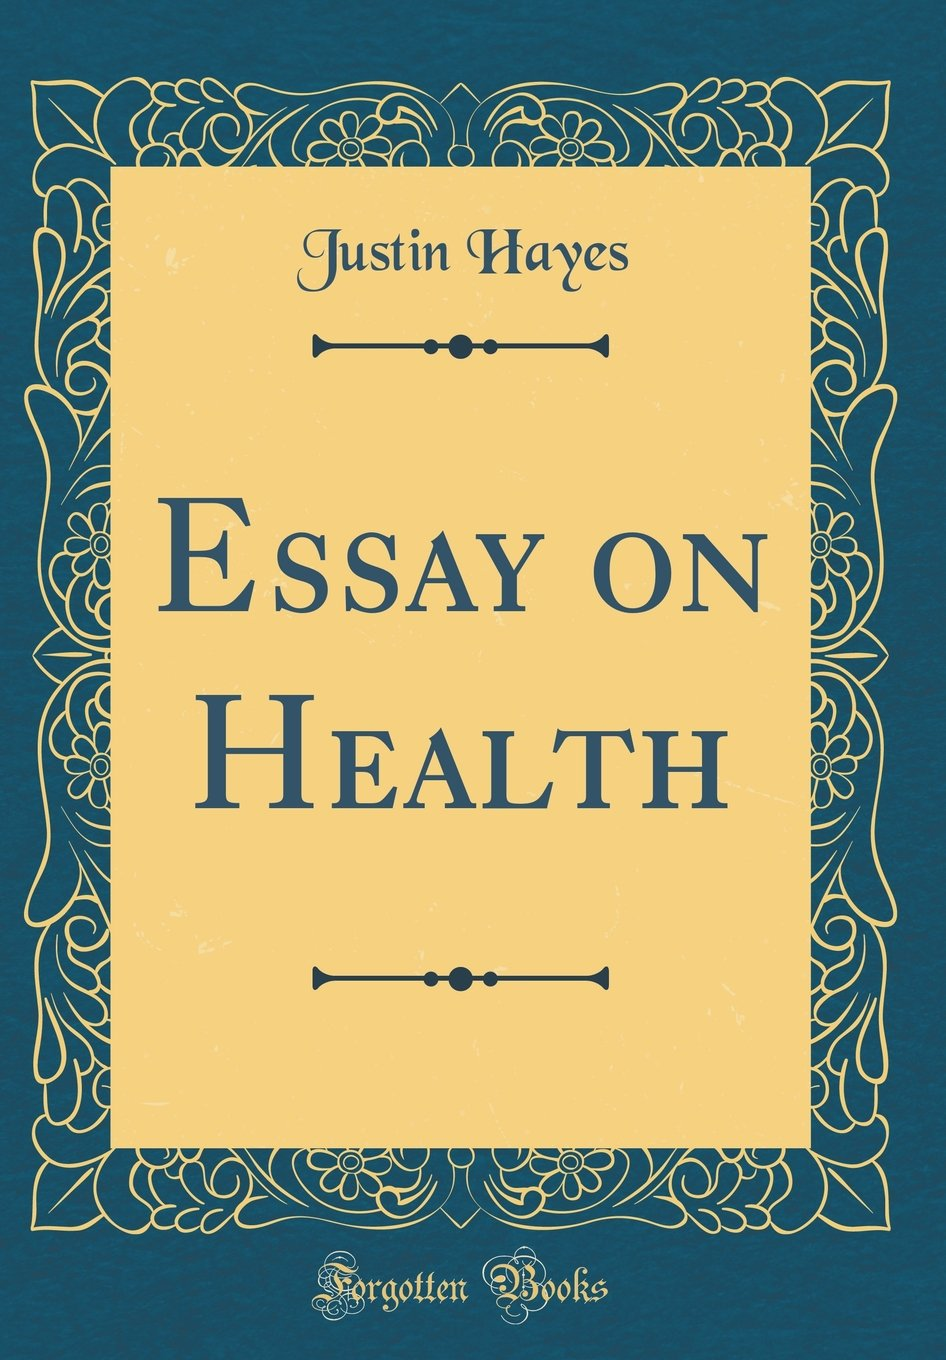 essay on health classic reprint justin hayes